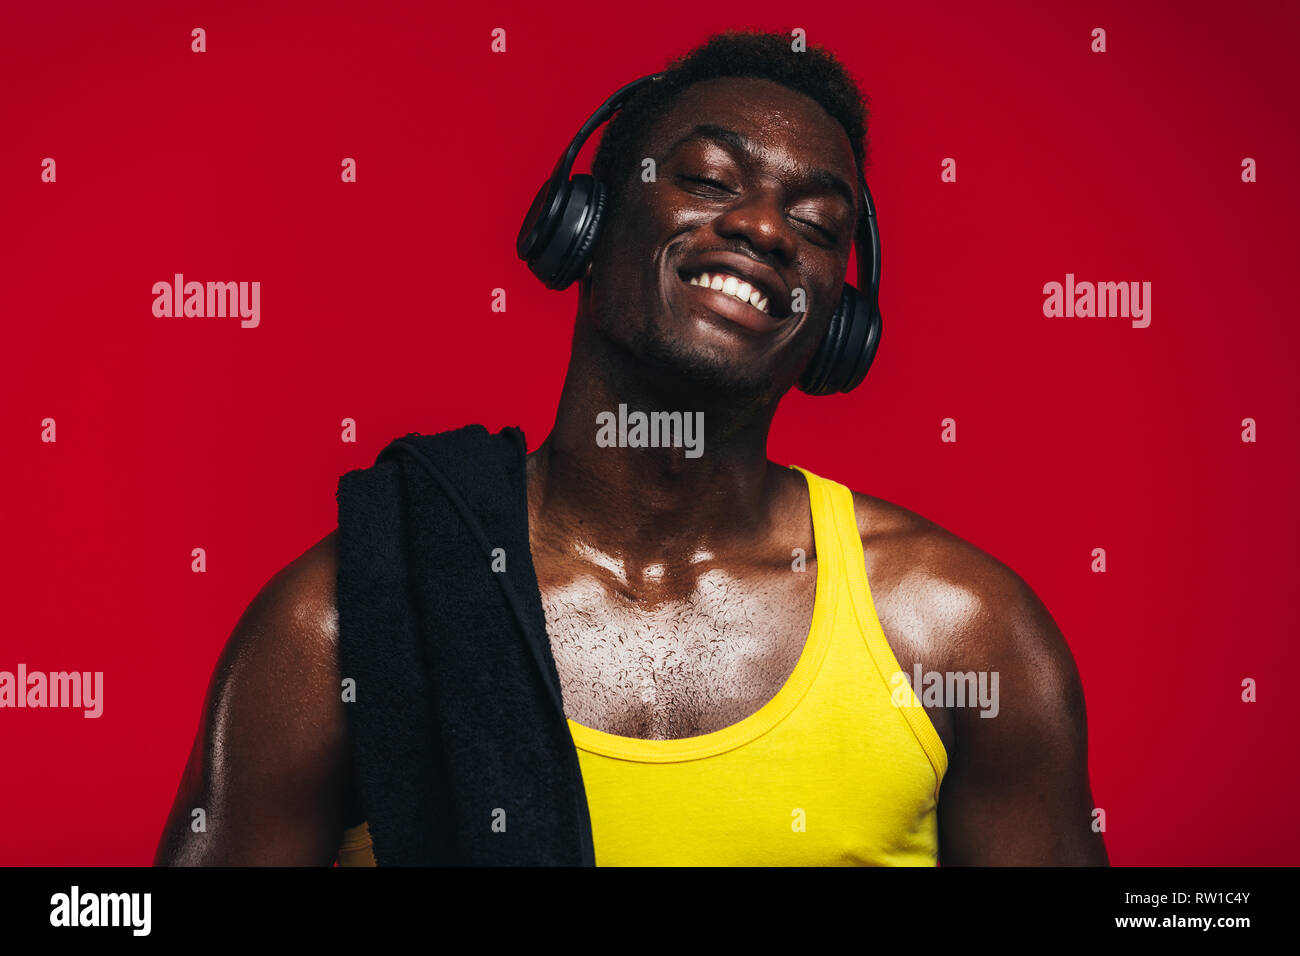 African man with towel on shoulder enjoying listening to music on headphones. Fit young man listening to music during workout break on red background. - Stock Image